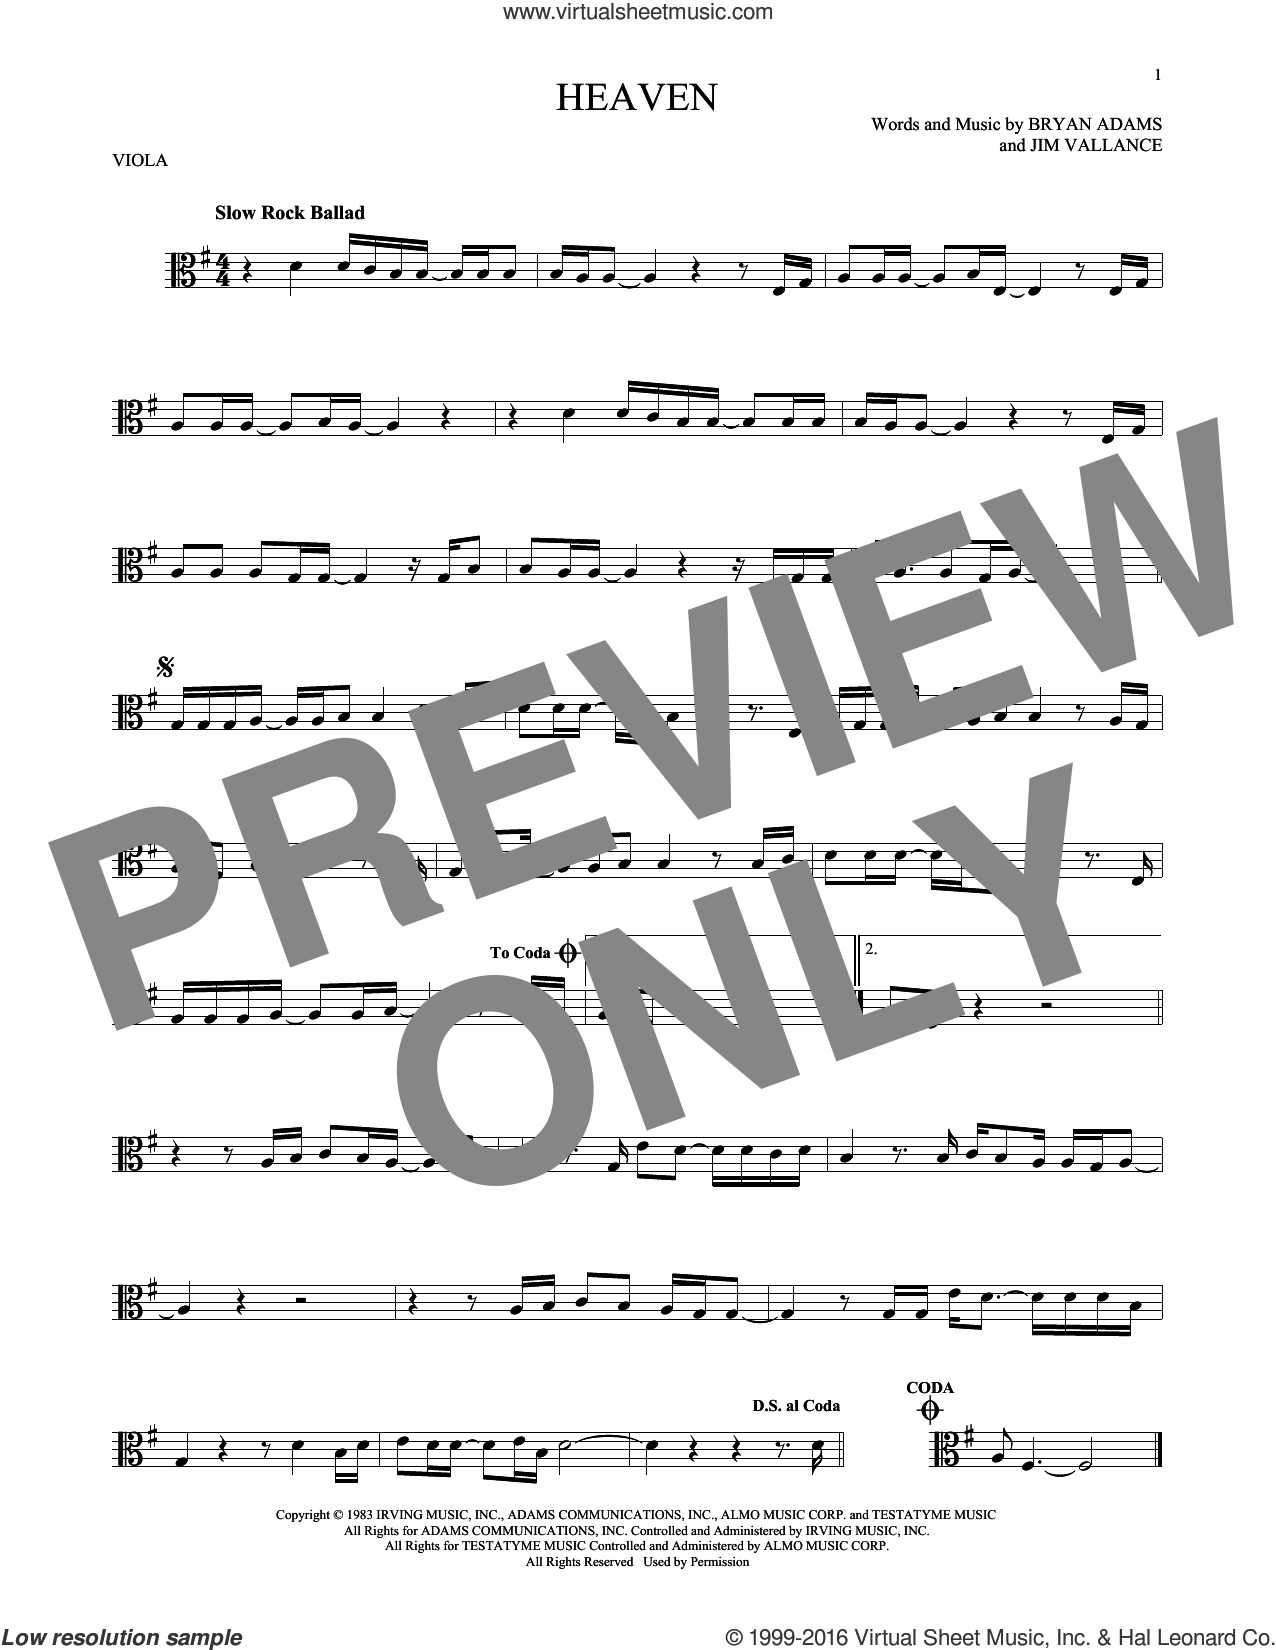 Heaven sheet music for viola solo by Jim Vallance